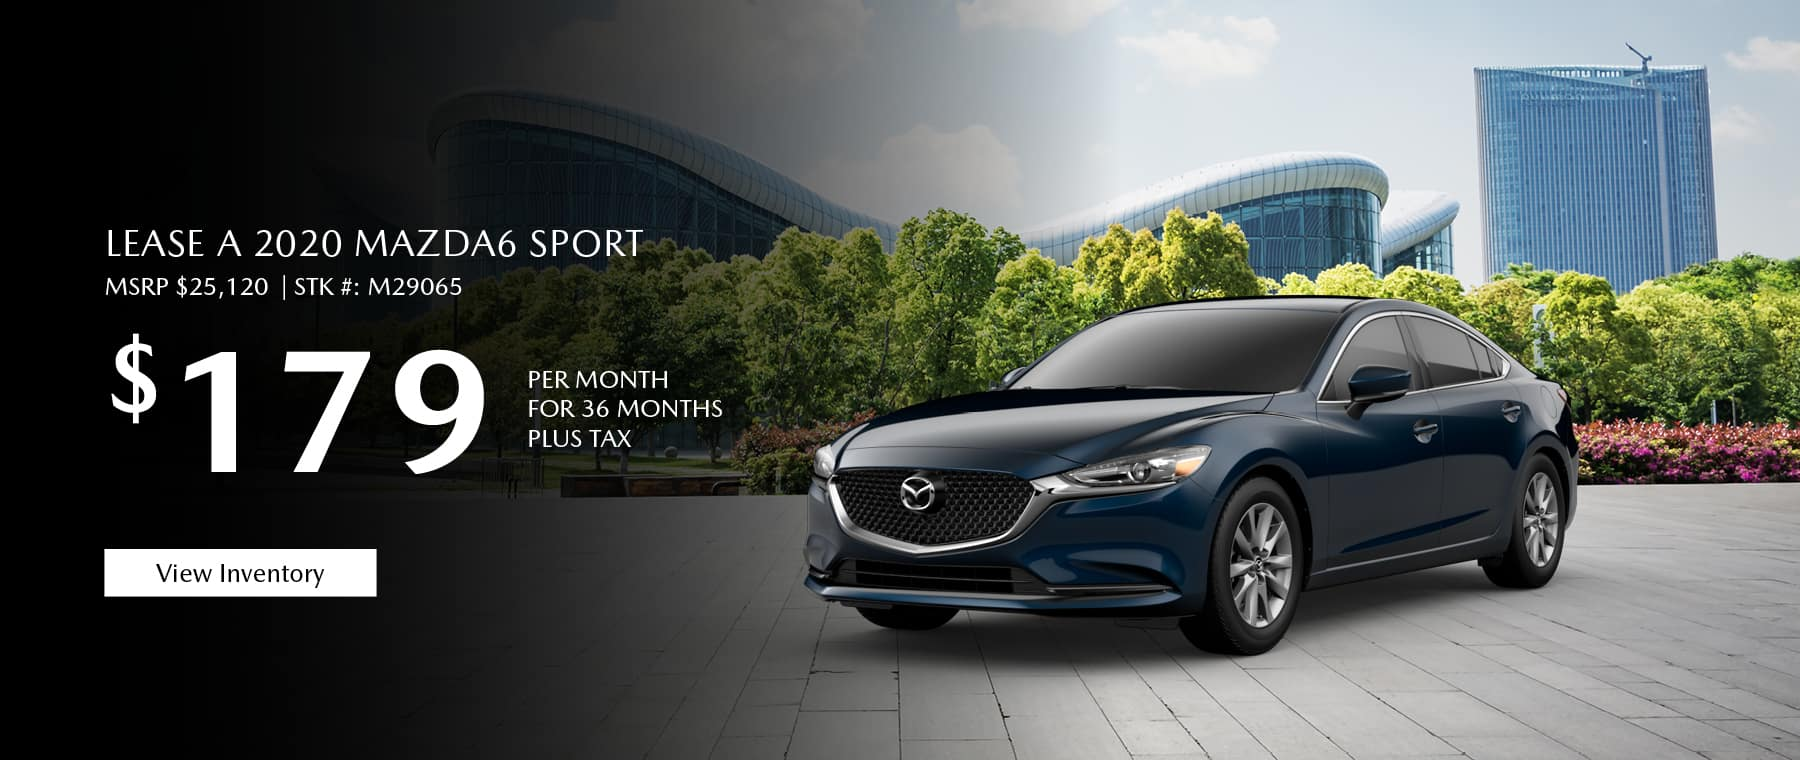 Lease the 2020 Mazda6 for $179 per month, plus tax.